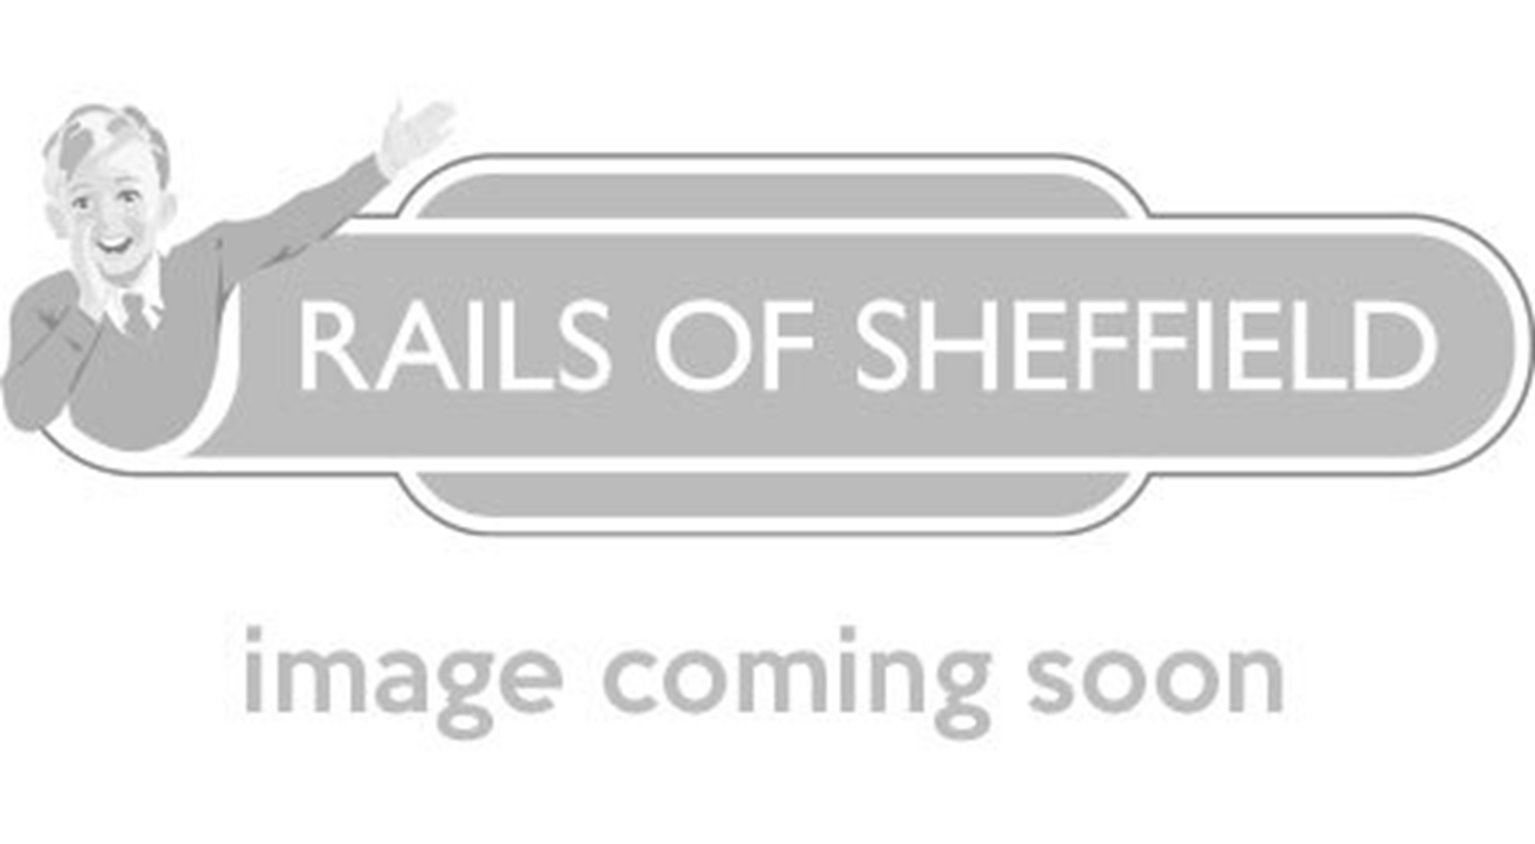 2 Detached Houses - Card Kit